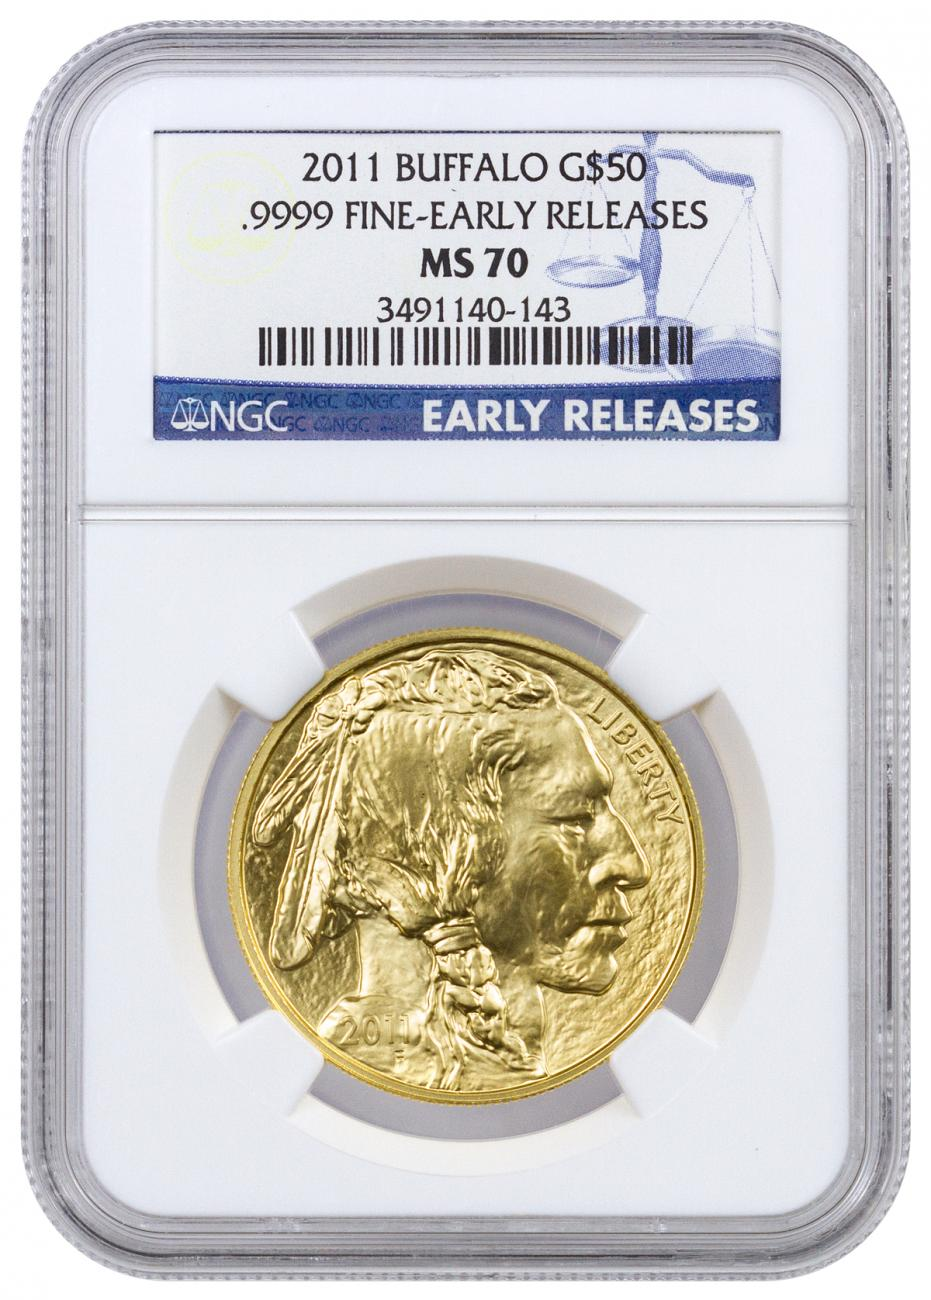 2011 1 oz Gold Buffalo $50 Coin NGC MS70 ER